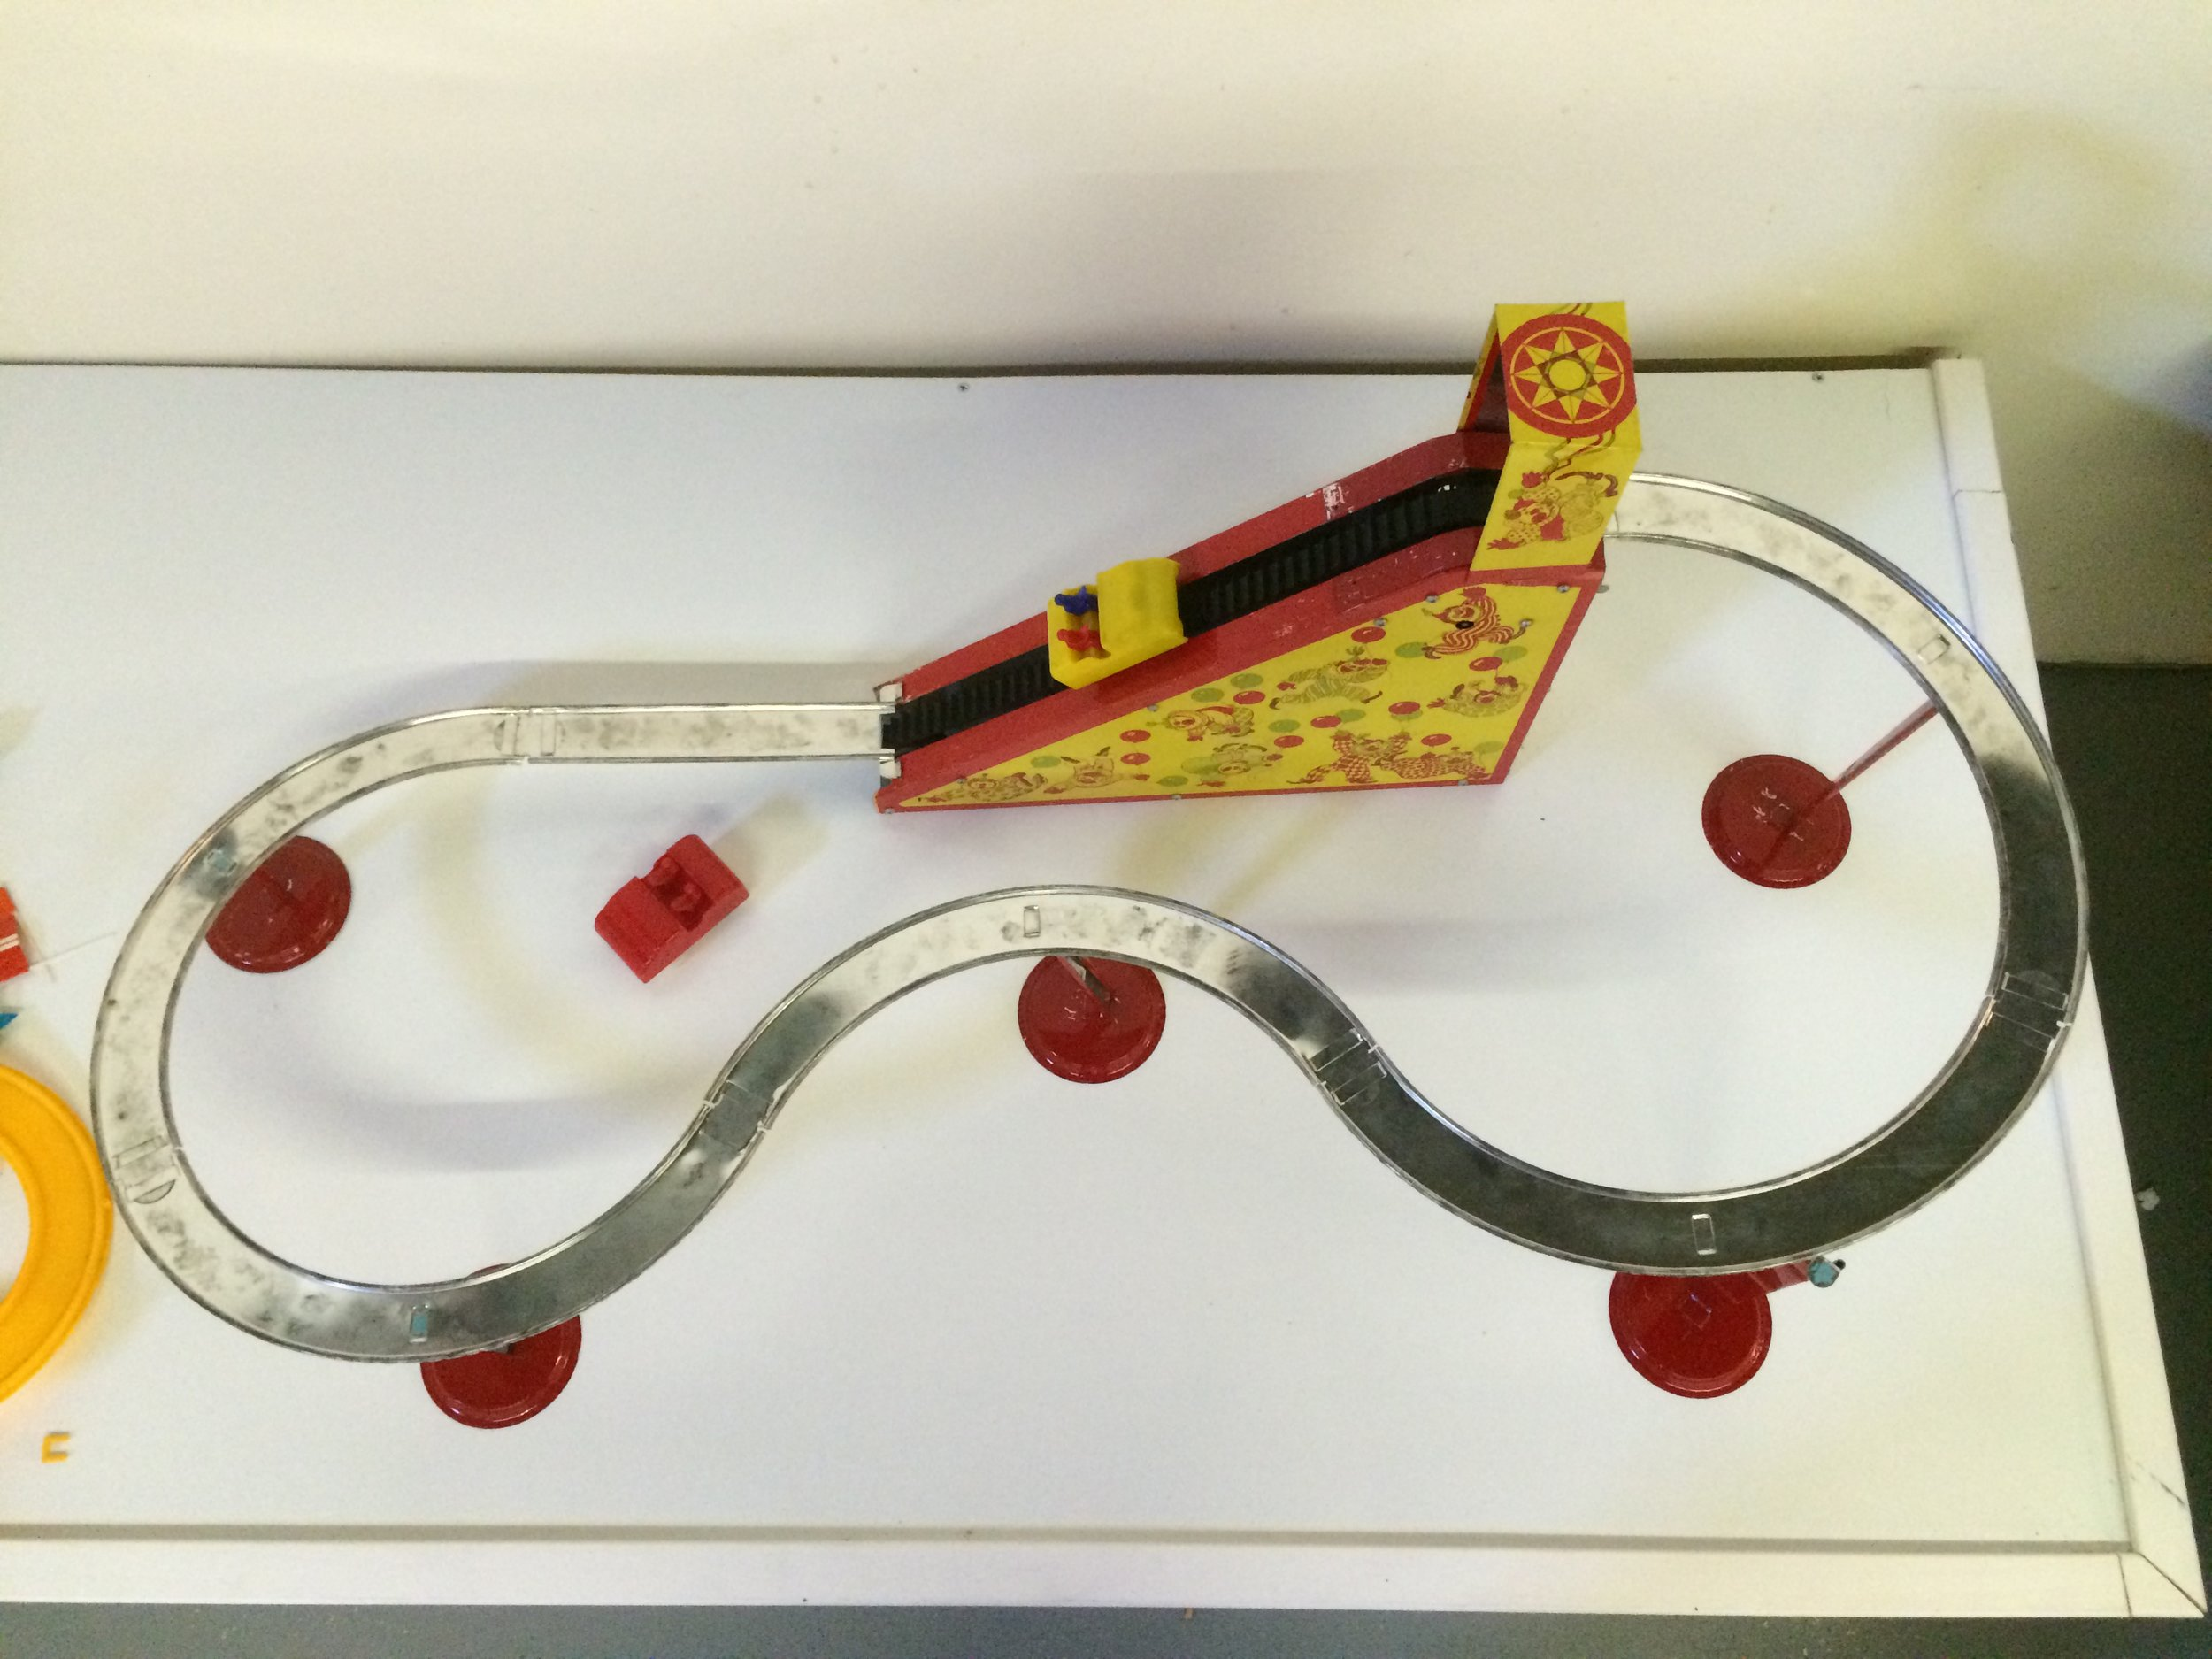 Exhibit: Playtime: Roller Coaster Toy Gallery - Sky-Ride Roller Coaster (wind up lift mechanism) c. 1940